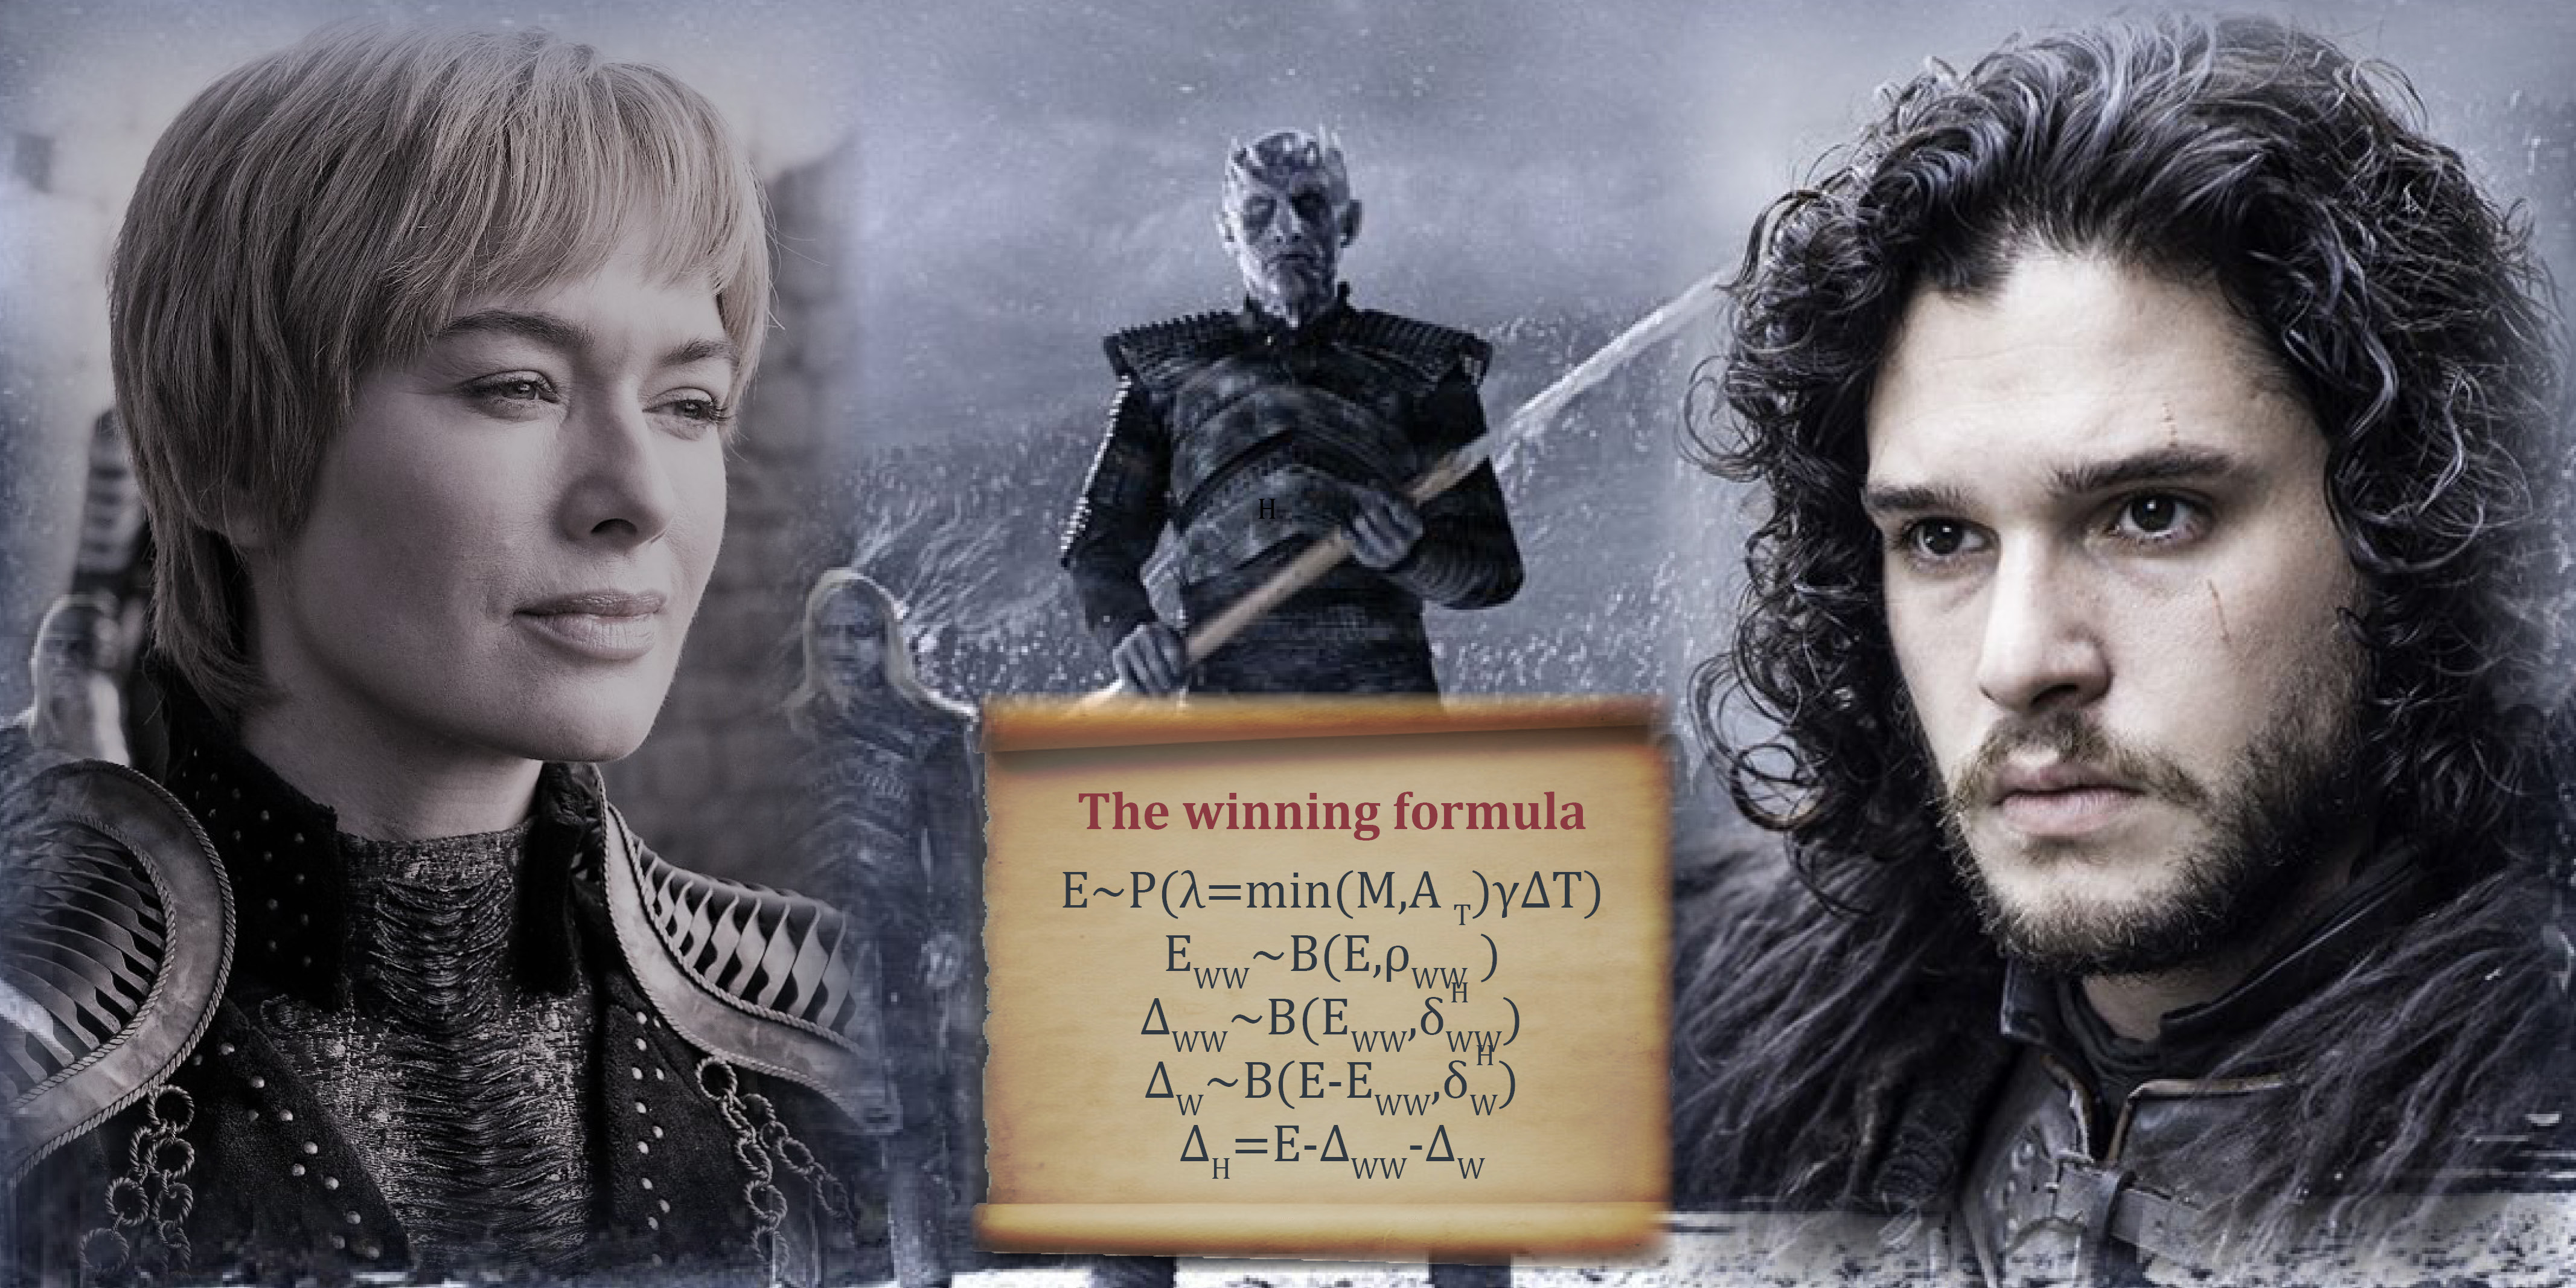 Game of Thrones winning formula. Credit: LSHTM